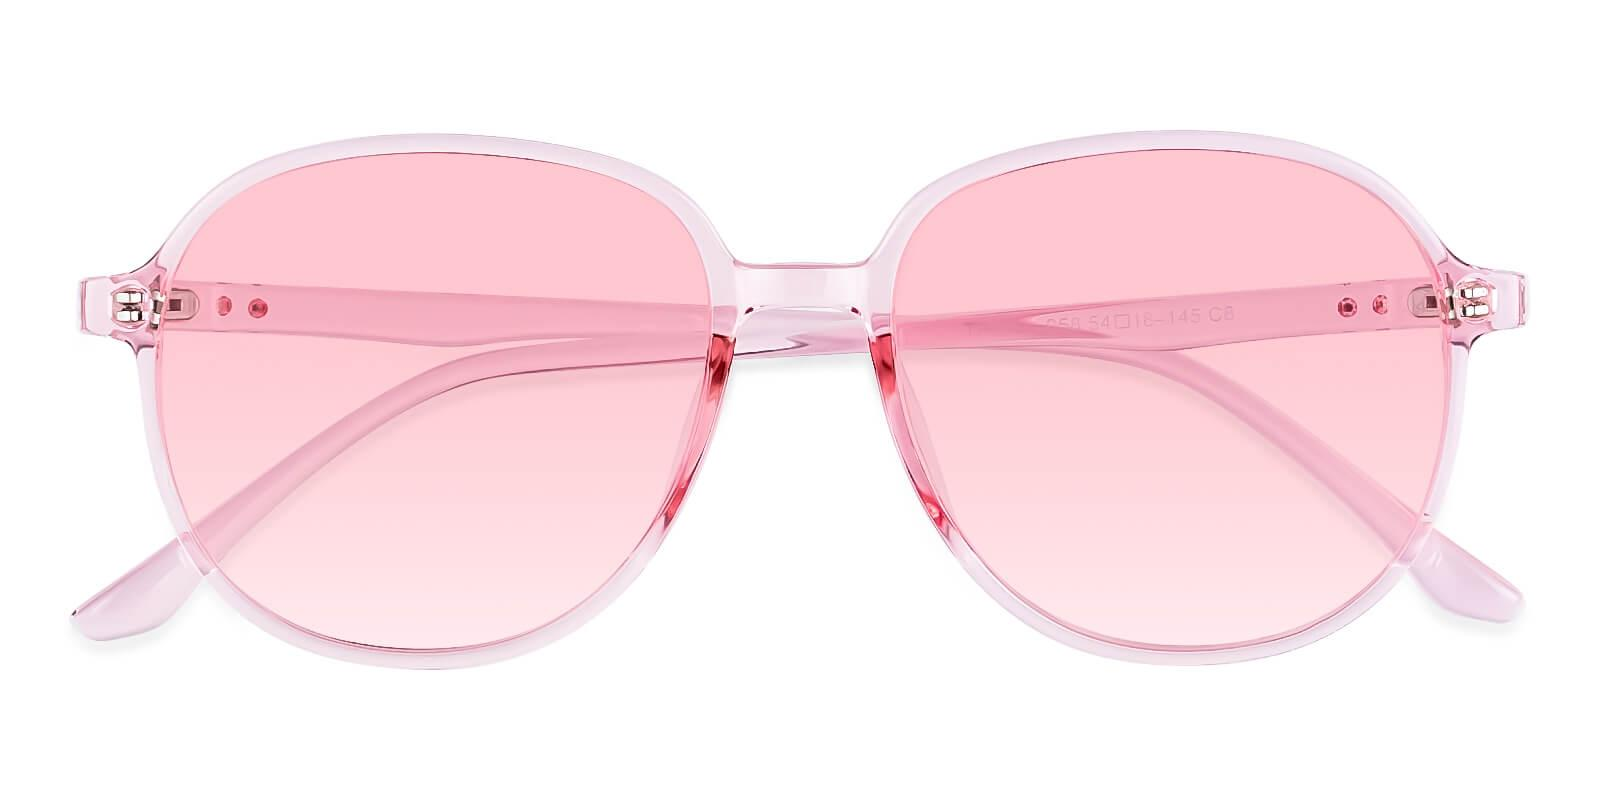 Rotem Pink TR Lightweight , Sunglasses , UniversalBridgeFit Frames from ABBE Glasses